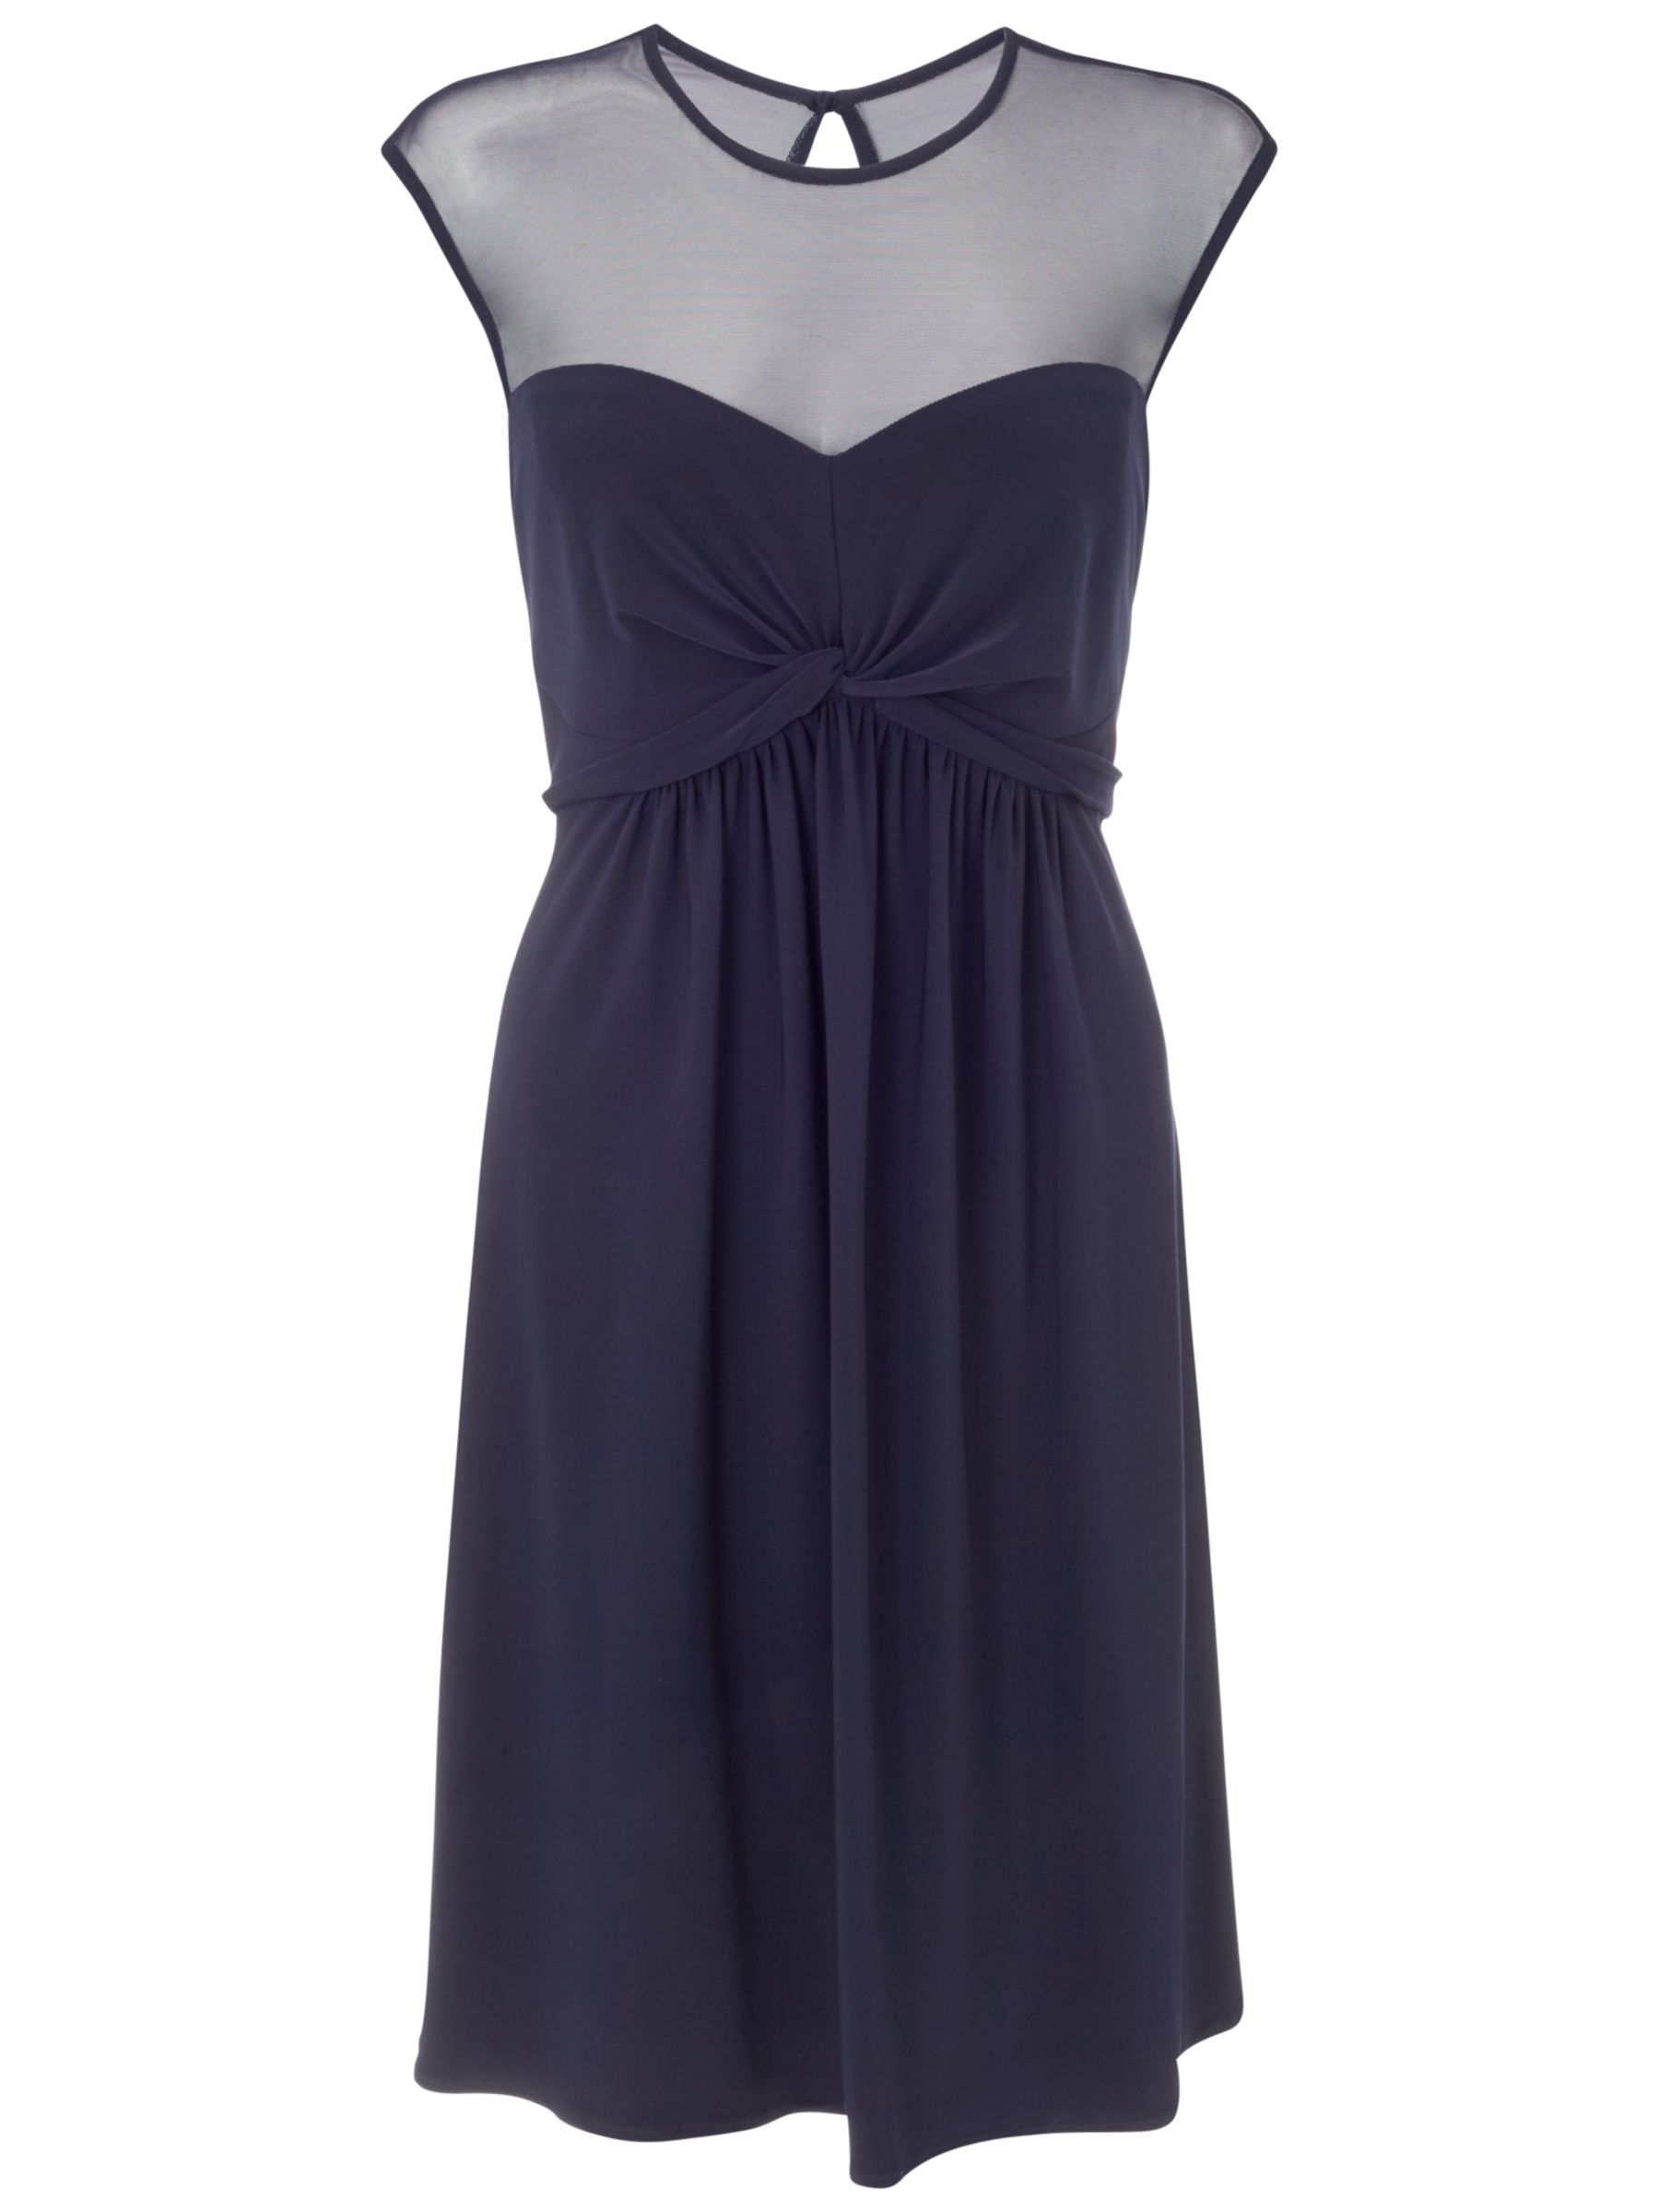 ariella charlie mesh neck dress navy, ariella, charlie, mesh, neck, dress, navy, 8|14|12|10|18|16, women, womens dresses, new in clothing, gifts, wedding, wedding clothing, female guests, 1923345